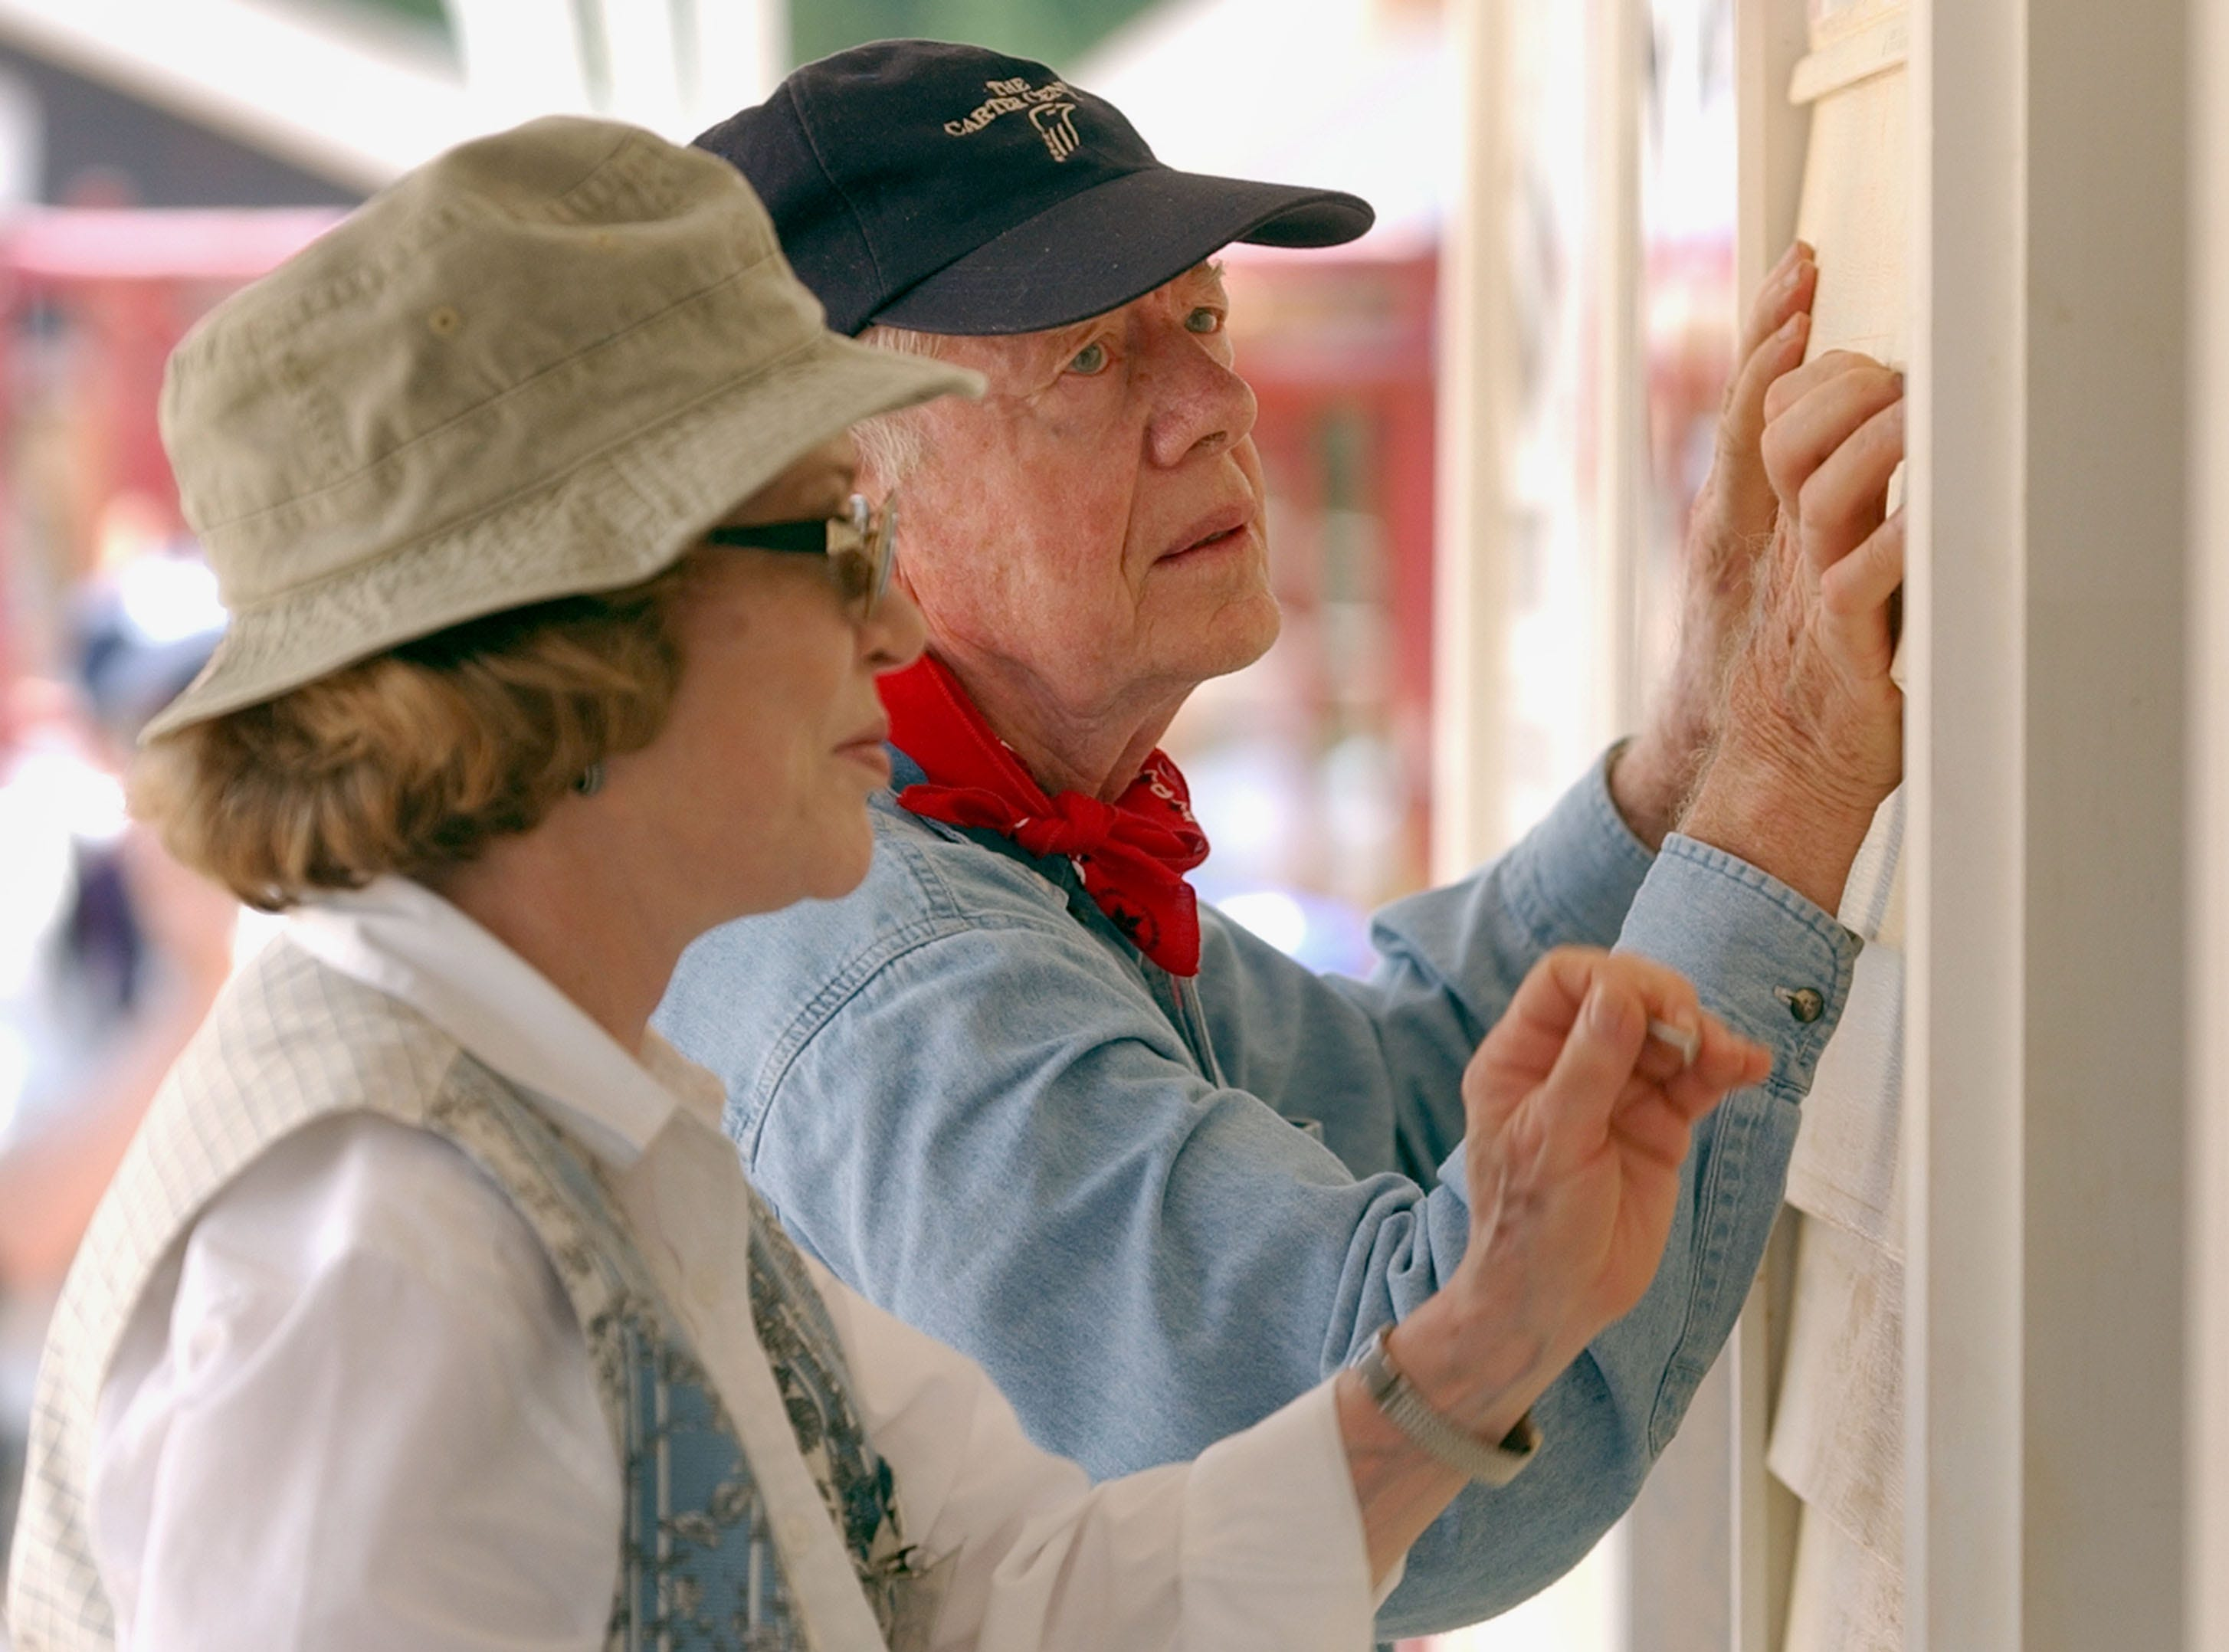 Jimmy Carter and his wife Rosalyn attach siding to the front of a Habitat for Humanity home being built on June 10, 2003, in LaGrange, Ga. More than 90 homes are being built in LaGrange; Valdosta, Georgia; and Anniston, Alabama by volunteers as part of Habitat for Humanity International's Jimmy Carter Work Project 2003.